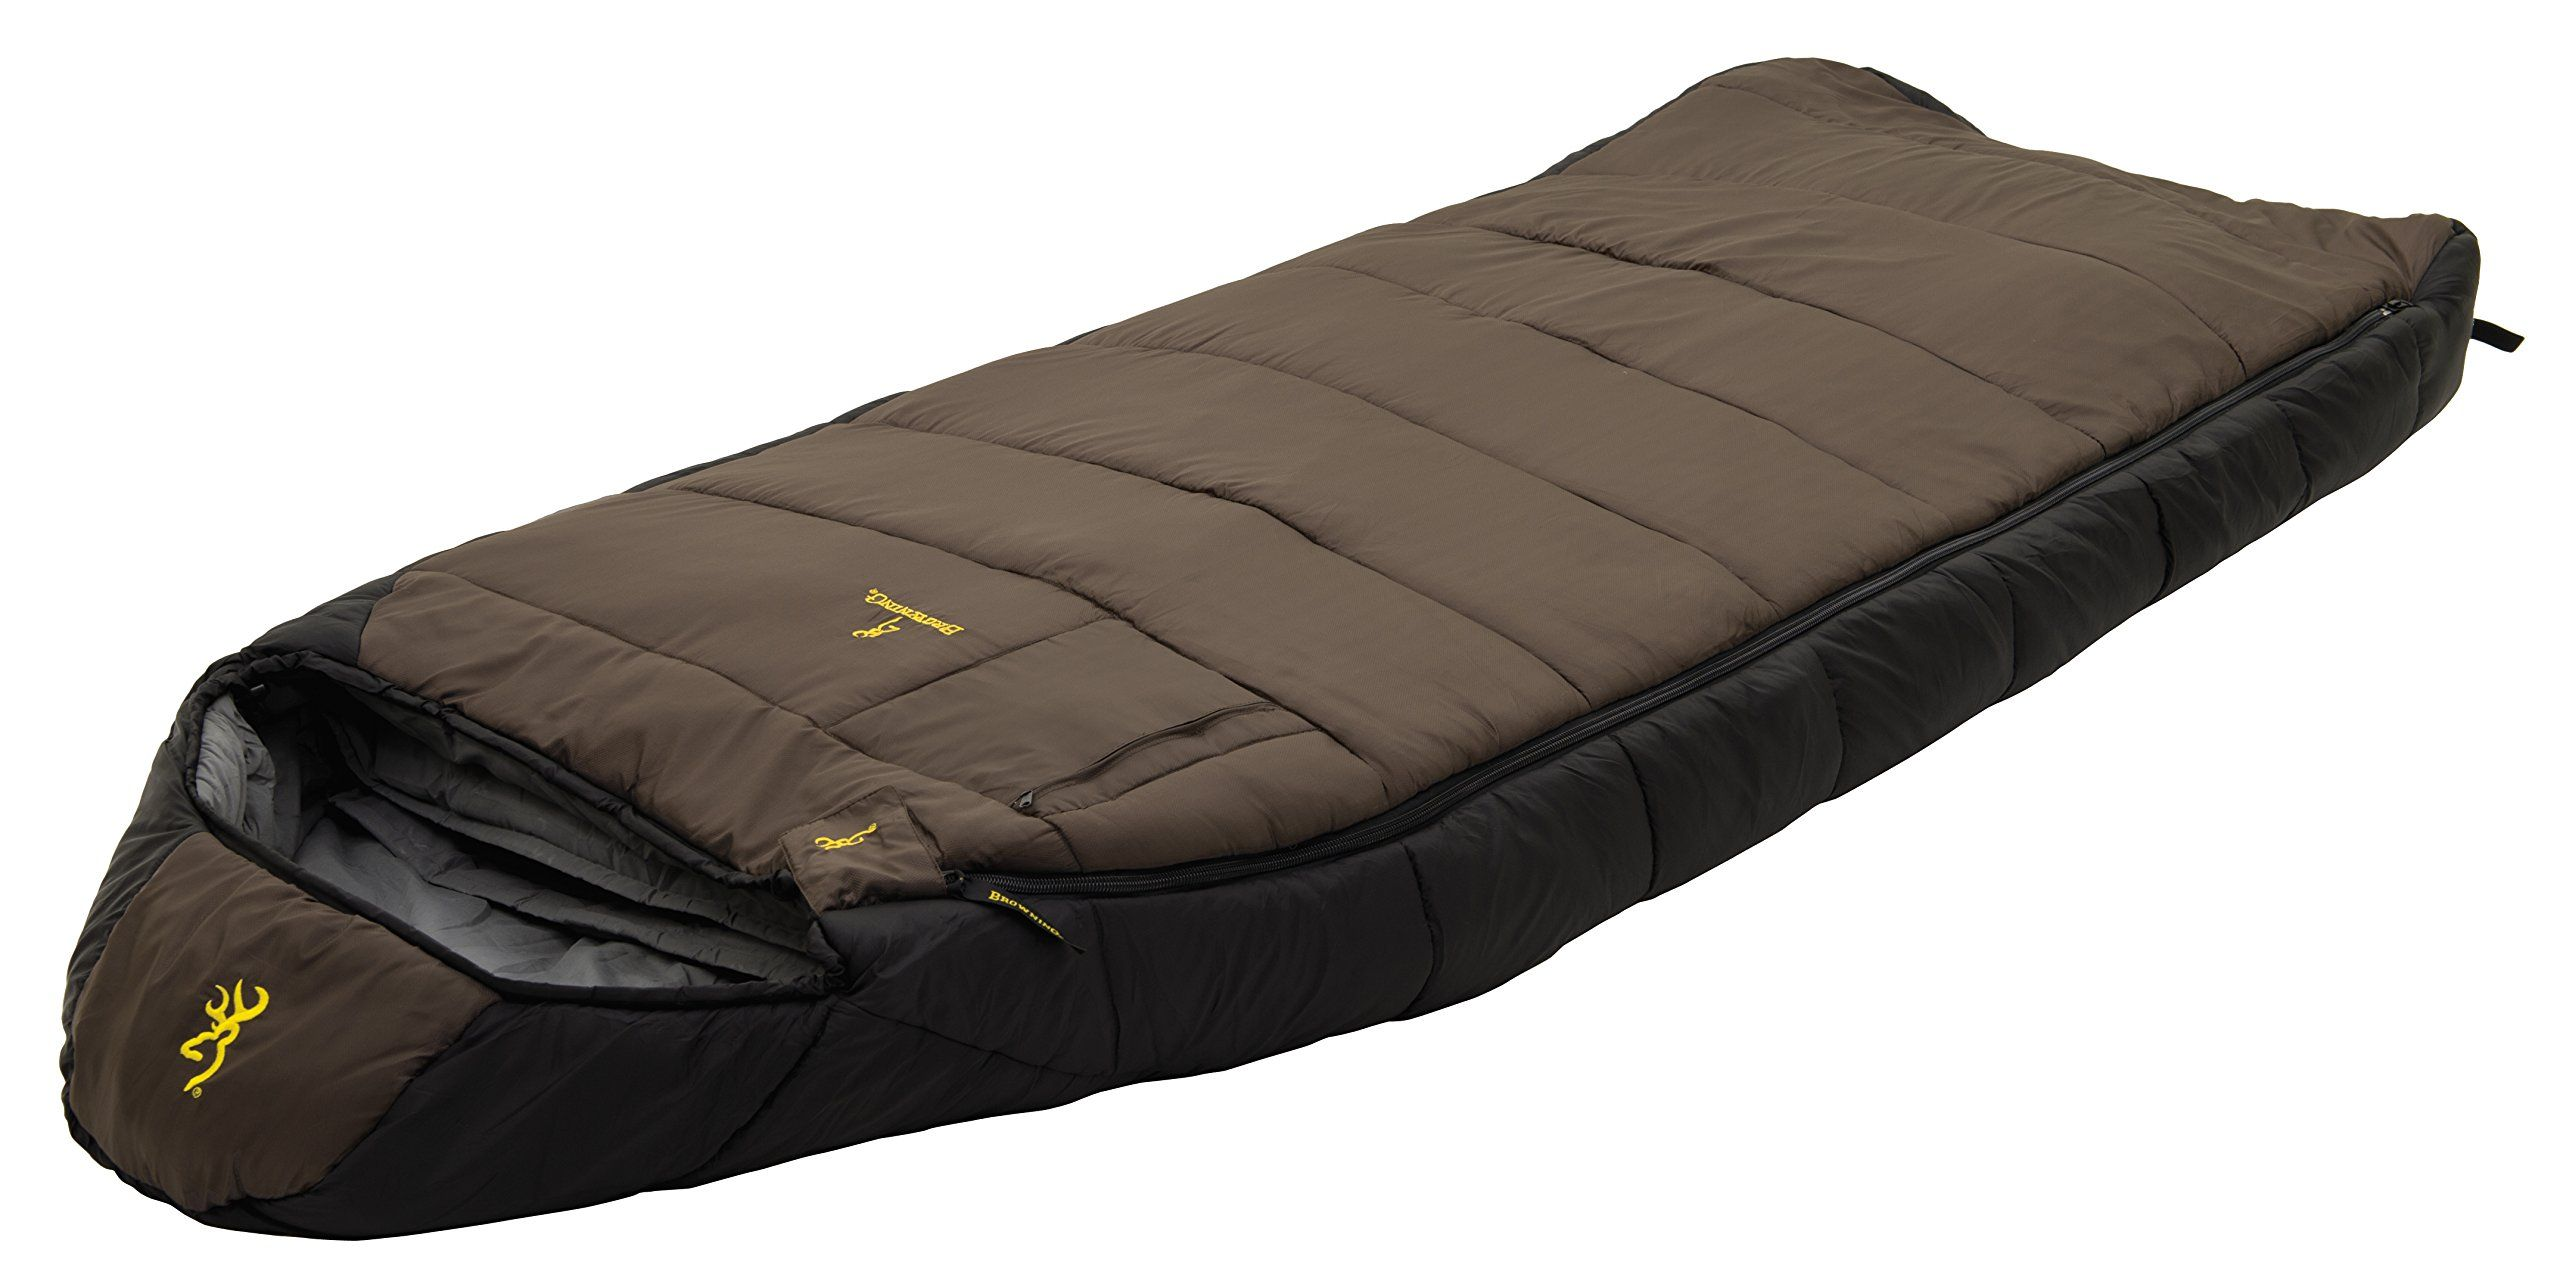 Browning Camping Mckinley 0 Degree Sleeping Bag This Best Ing Hooded Rectangle Is Great For Any Adventure